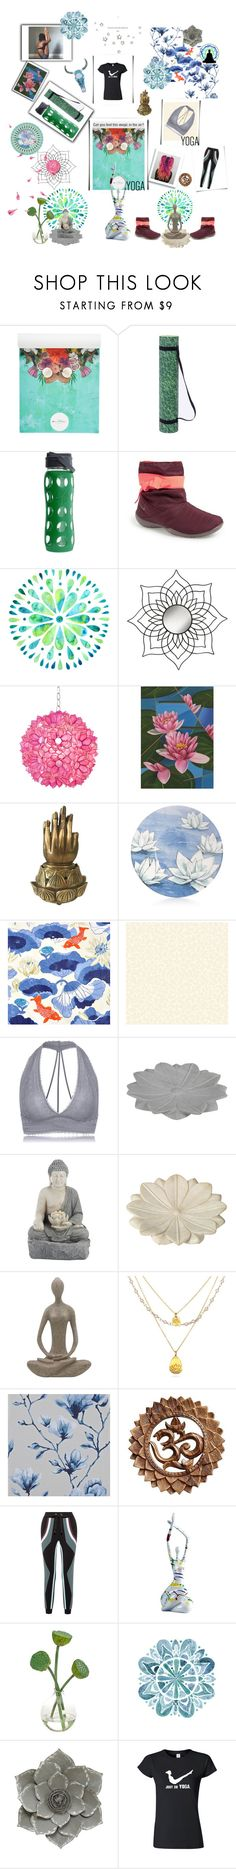 """""""🕉🌞""""Give like the Sun and the whole World🌎🌍🌏grows tall"""" Atticus🌞🌞"""" by maijah ❤ liked on Polyvore featuring La Vie Boheme, Lifefactory, NIKE, Worlds Away, NOVICA, Michael Aram, Waverly, York Wallcoverings, John Timberland and Jamie Young"""